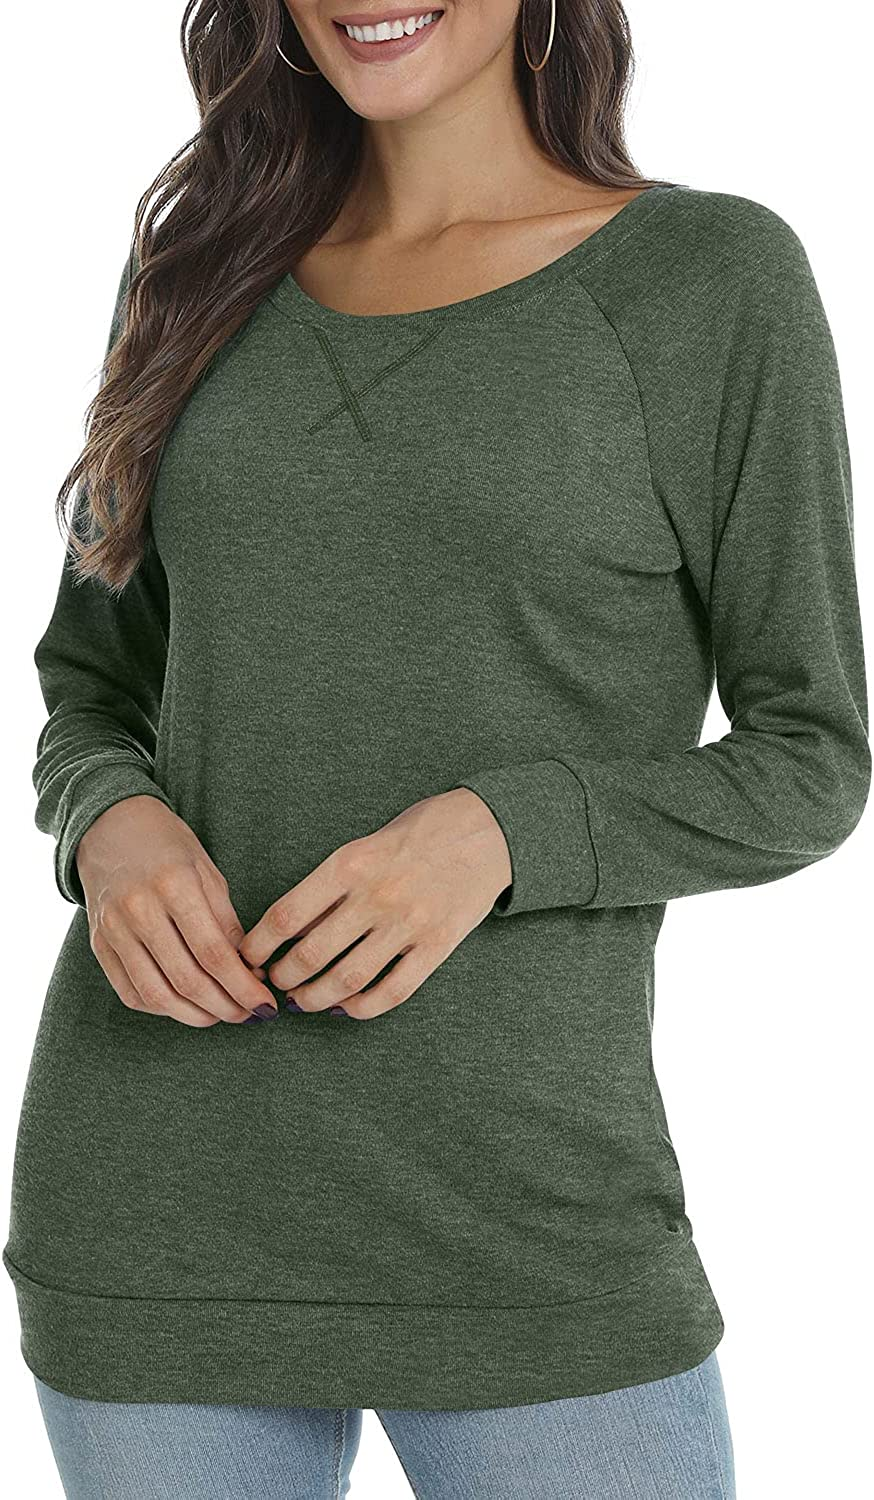 POPYOUNG Women's Fall 55% OFF Long Sleeve Tunic Crewne Tops for Spasm price Leggings